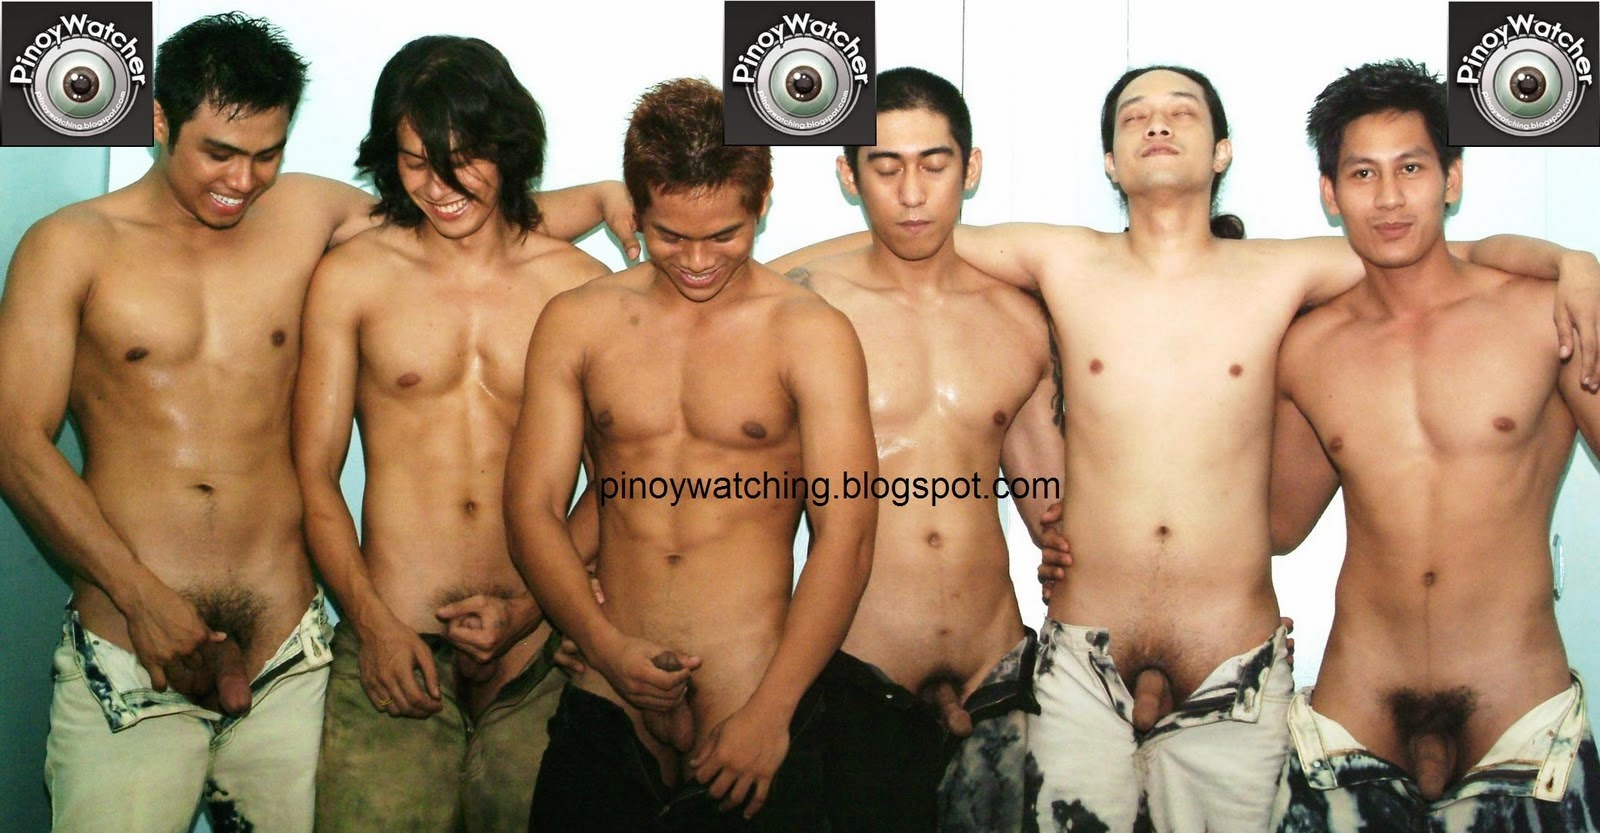 Pinoy Men Fucking In Nude 63